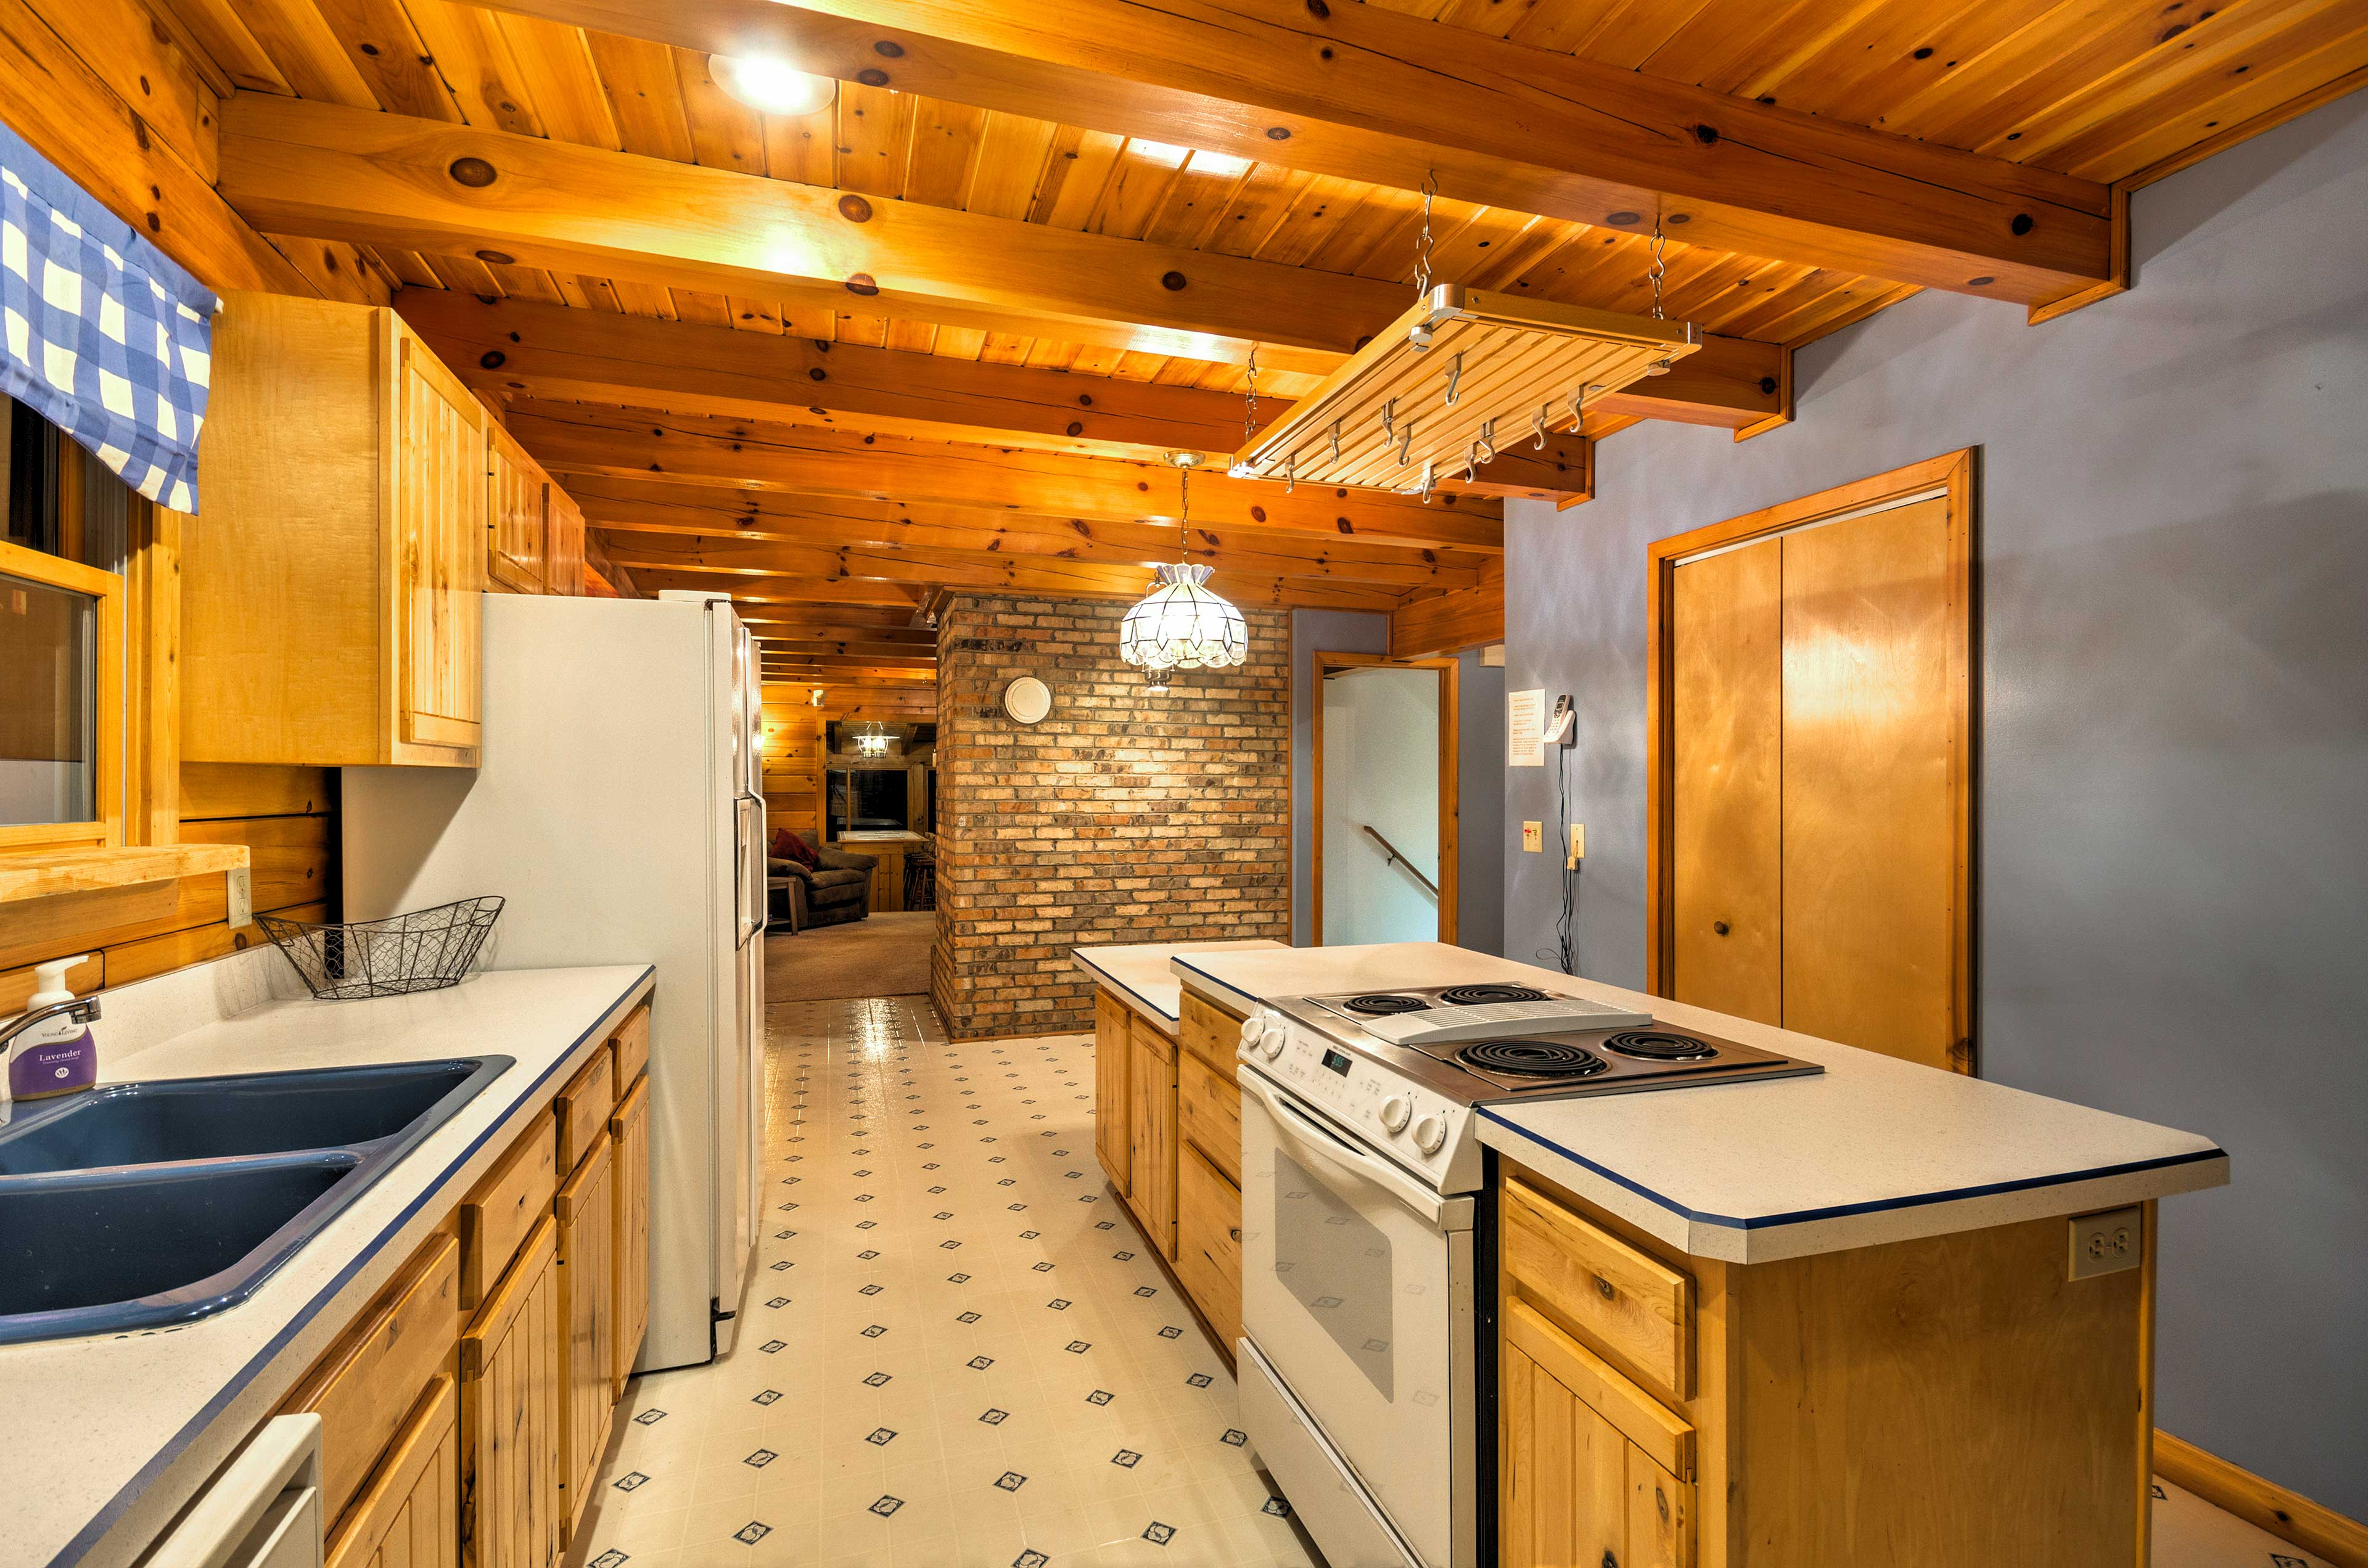 You'll have all the essential cooking appliances and ample counter space.